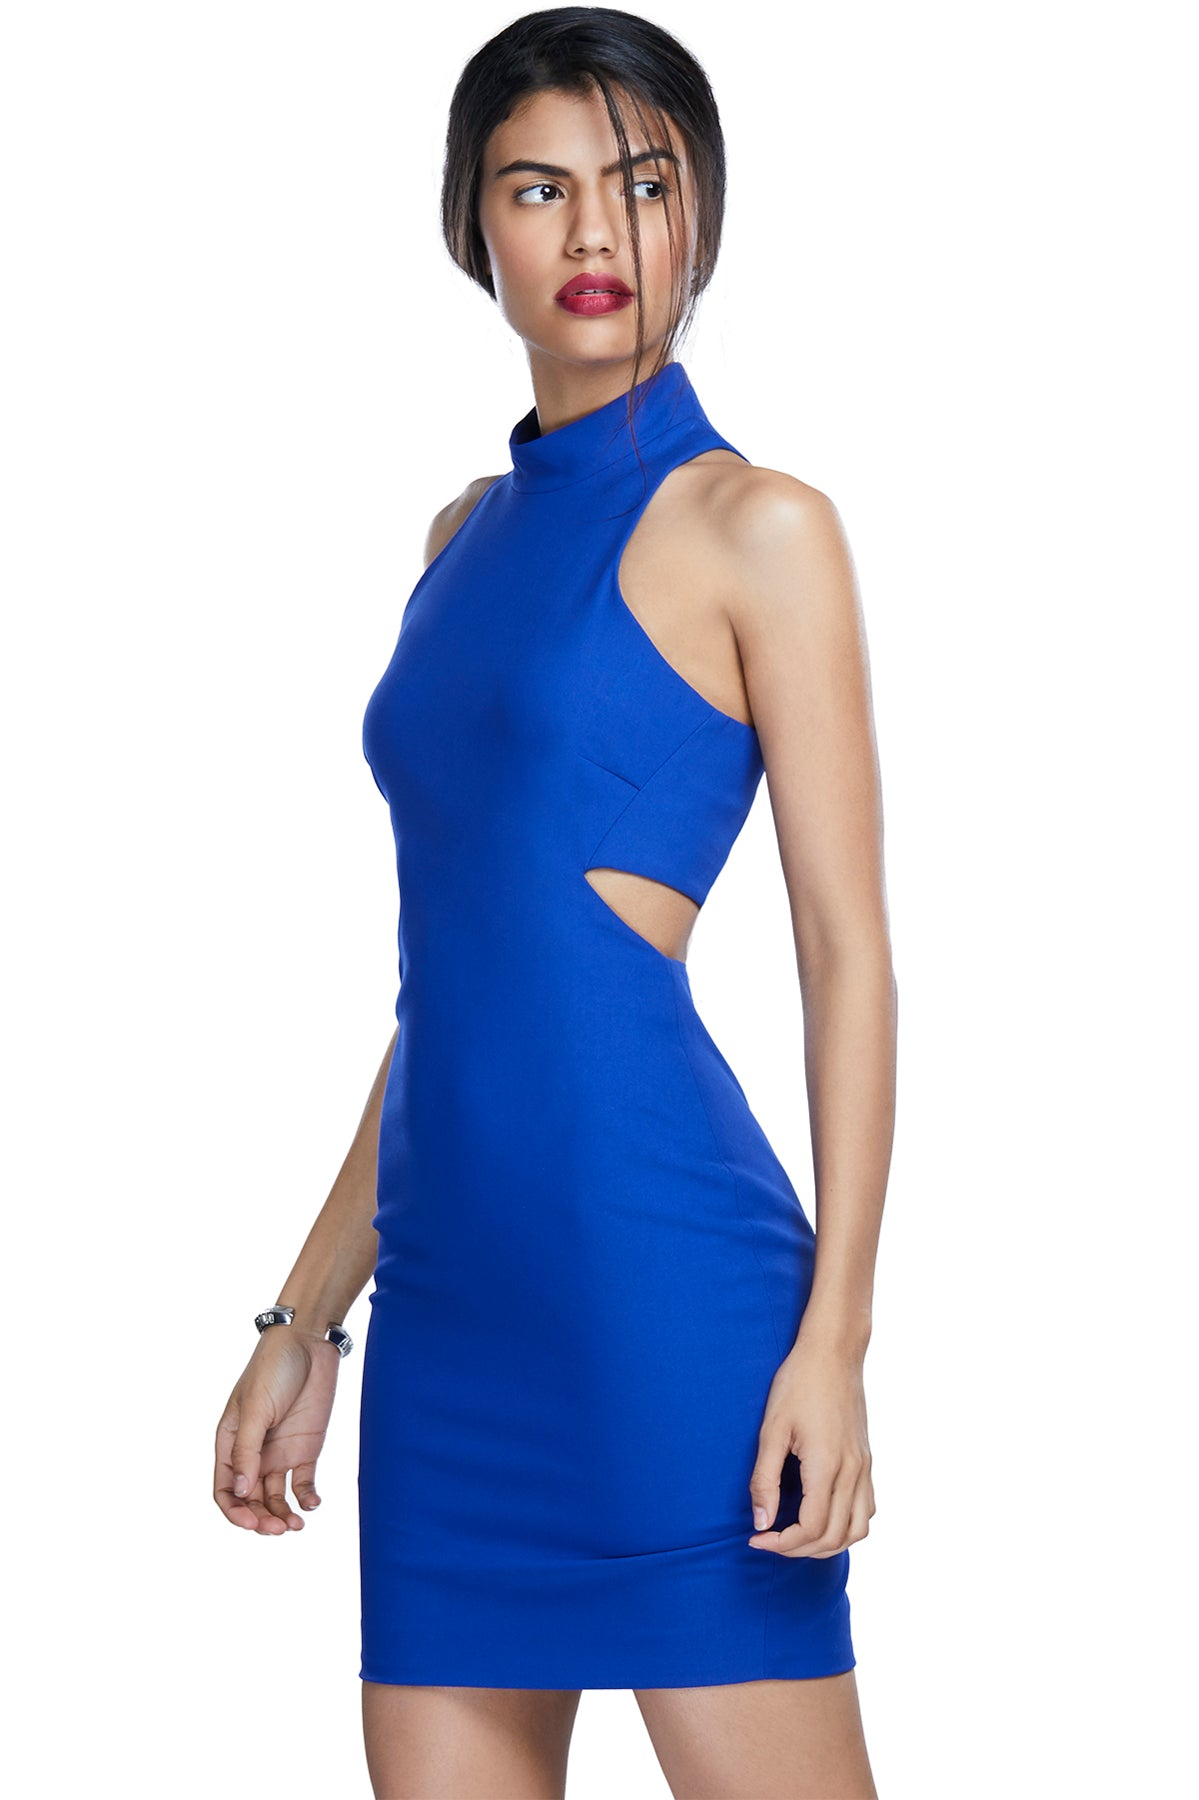 Got it, flaunt it! Arrest everyone's attention at once in this electric blue bodycon dress with cut-outs at the waist.